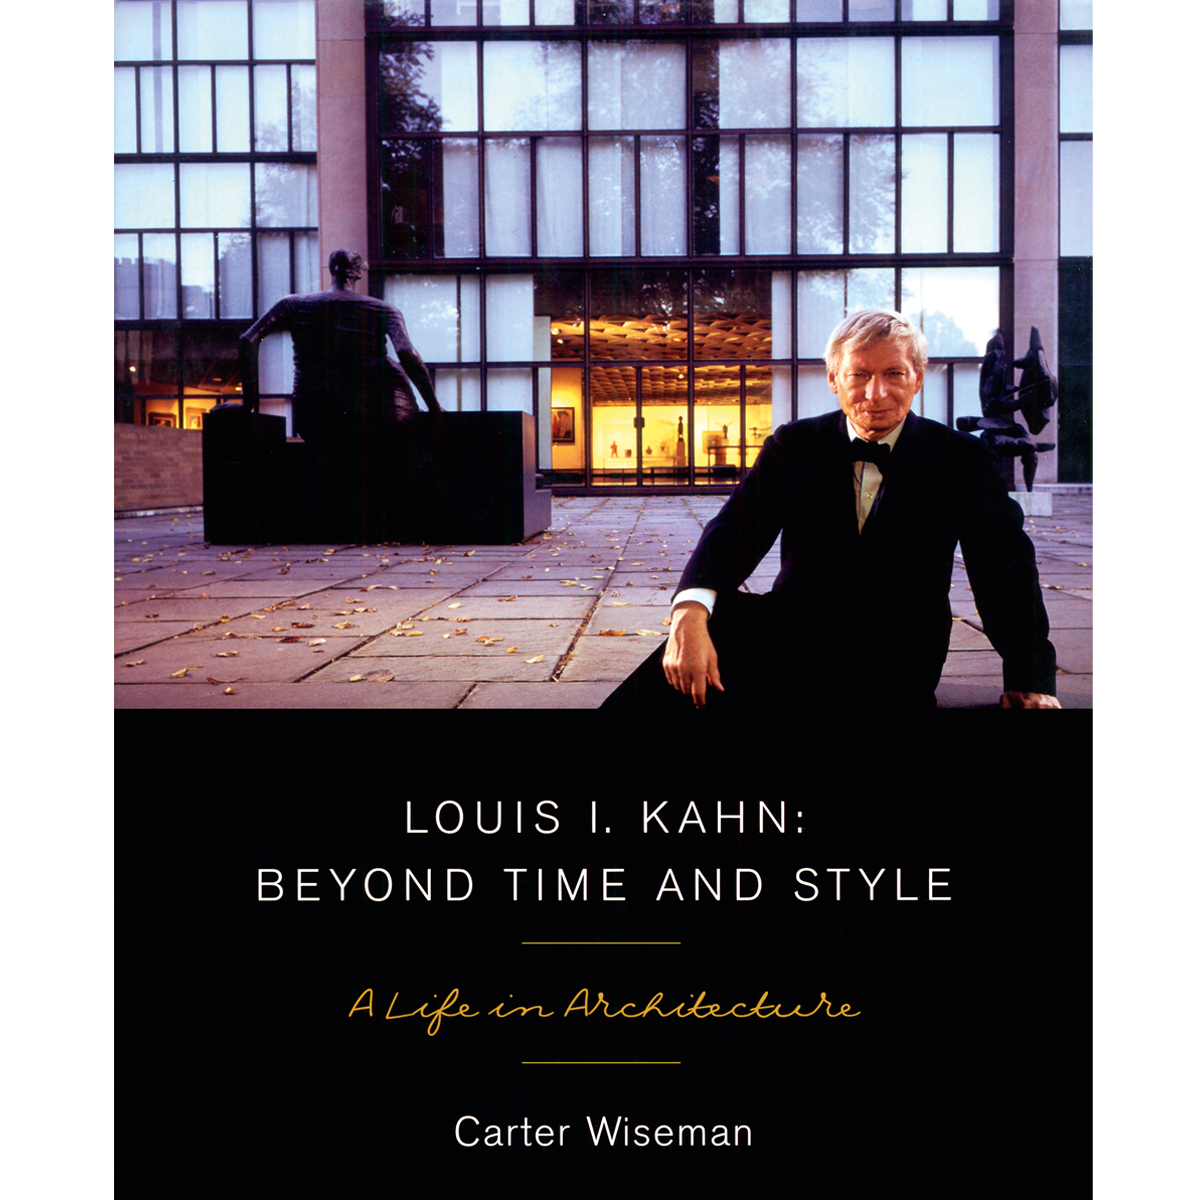 Louis I. Kahn: Beyond Time and Style